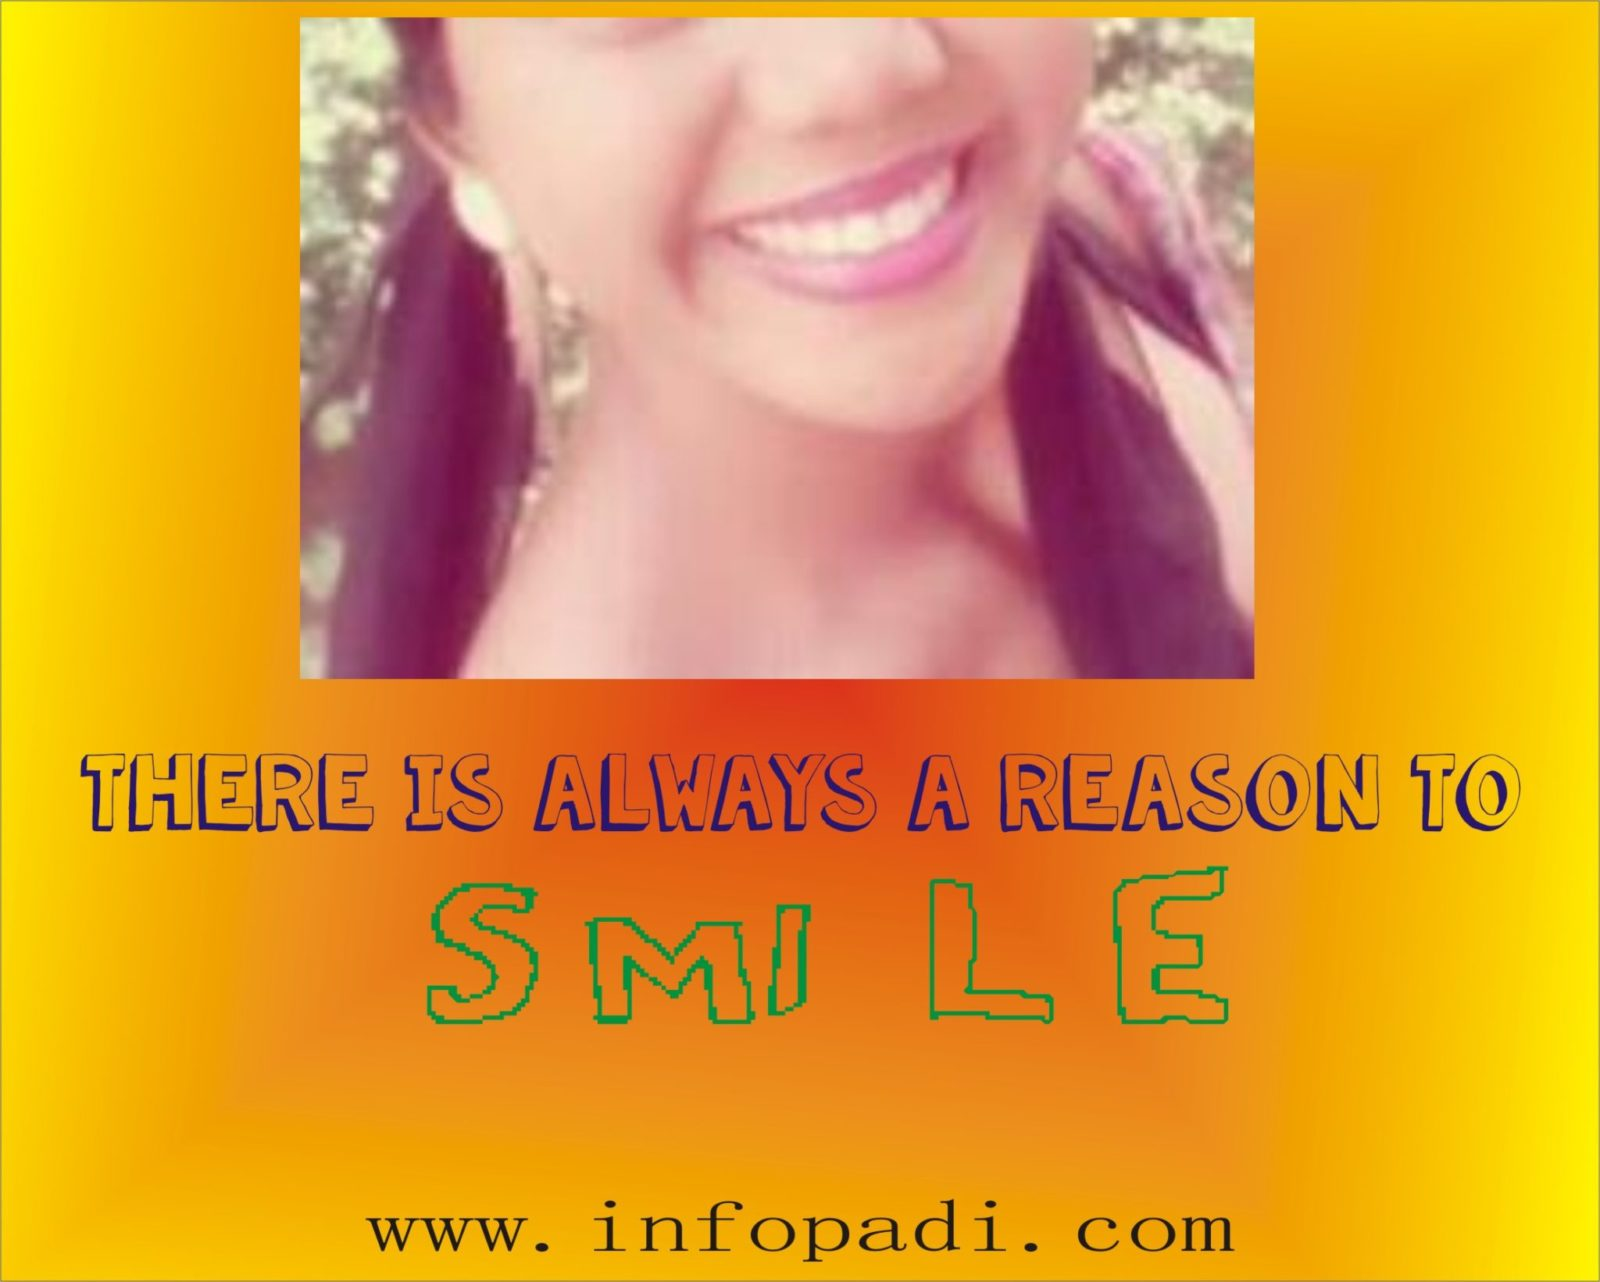 Benefits of smiling- Why you must smile in all situations, health benefits